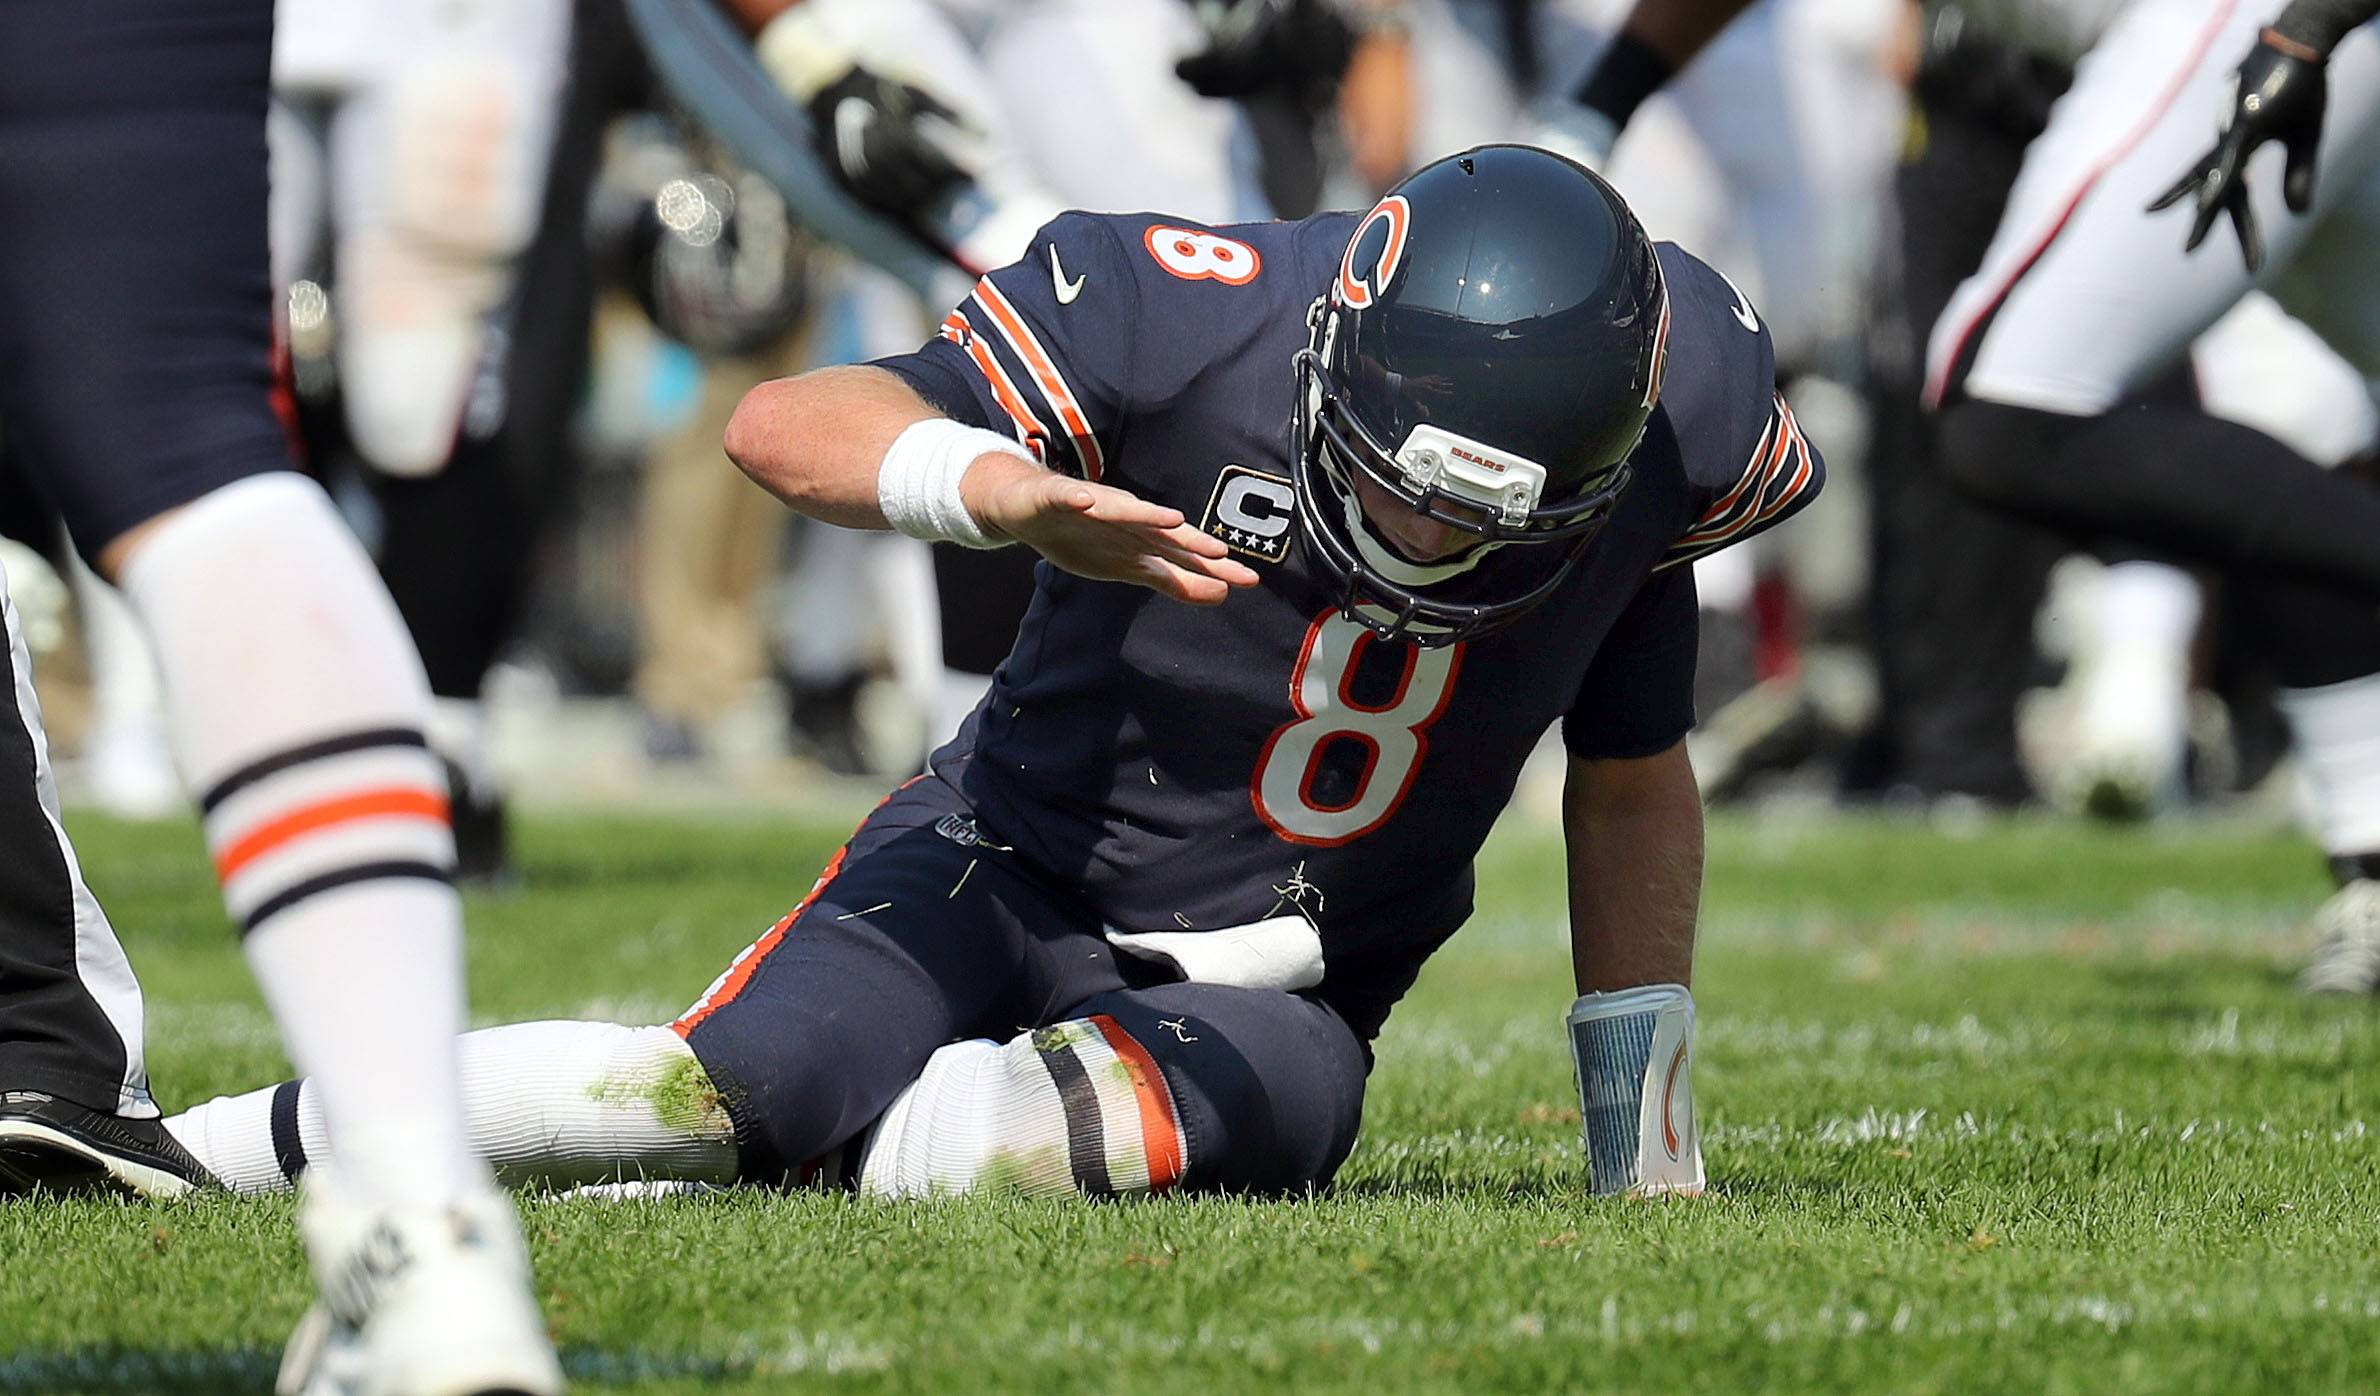 Chicago Bears quarterback Mike Glennon slaps the ground after getting sacked to end the game during their game against the Atlanta Falcons Sunday, September 10, 2017 at Soldier Field on Chicago.